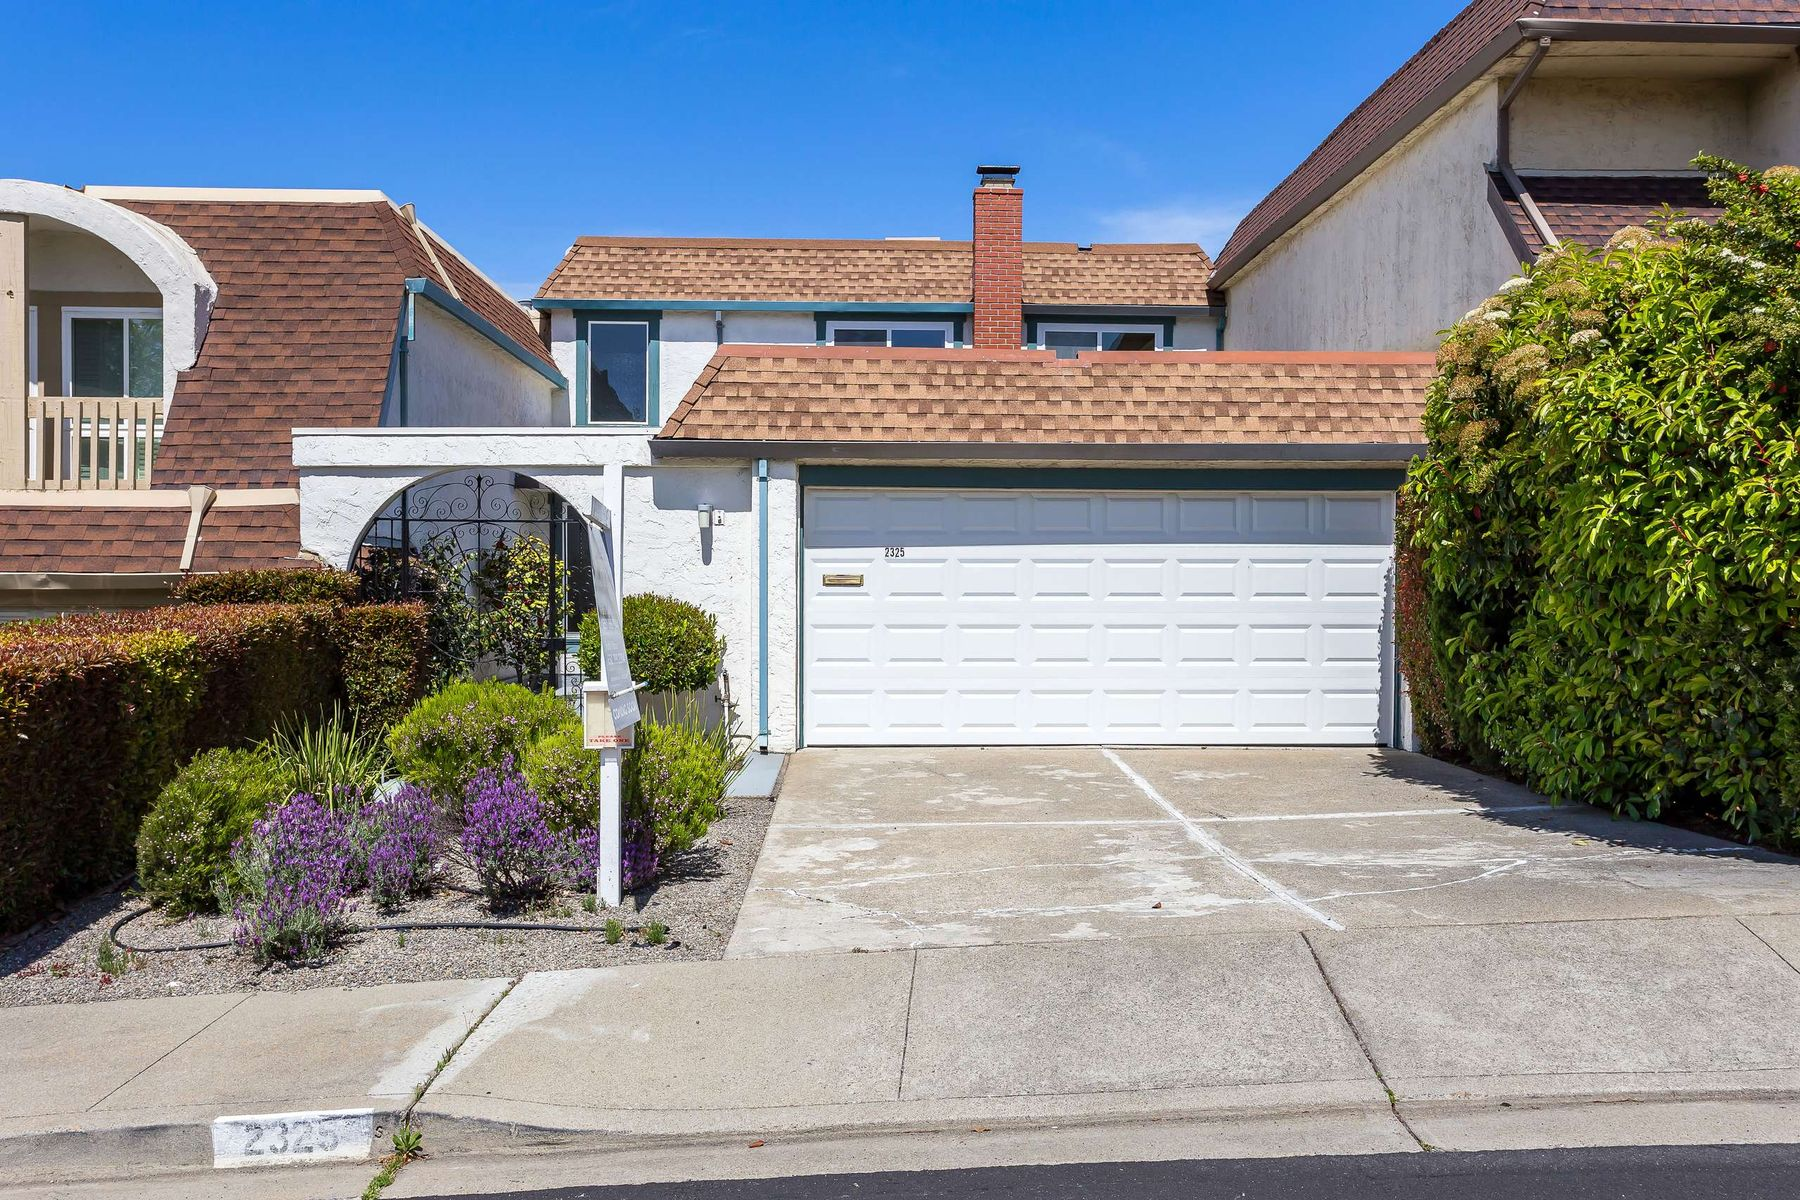 Single Family Home for Active at Mid-Peninsula Home With Bay Views 2325 Hastings Dr Belmont, California 94002 United States